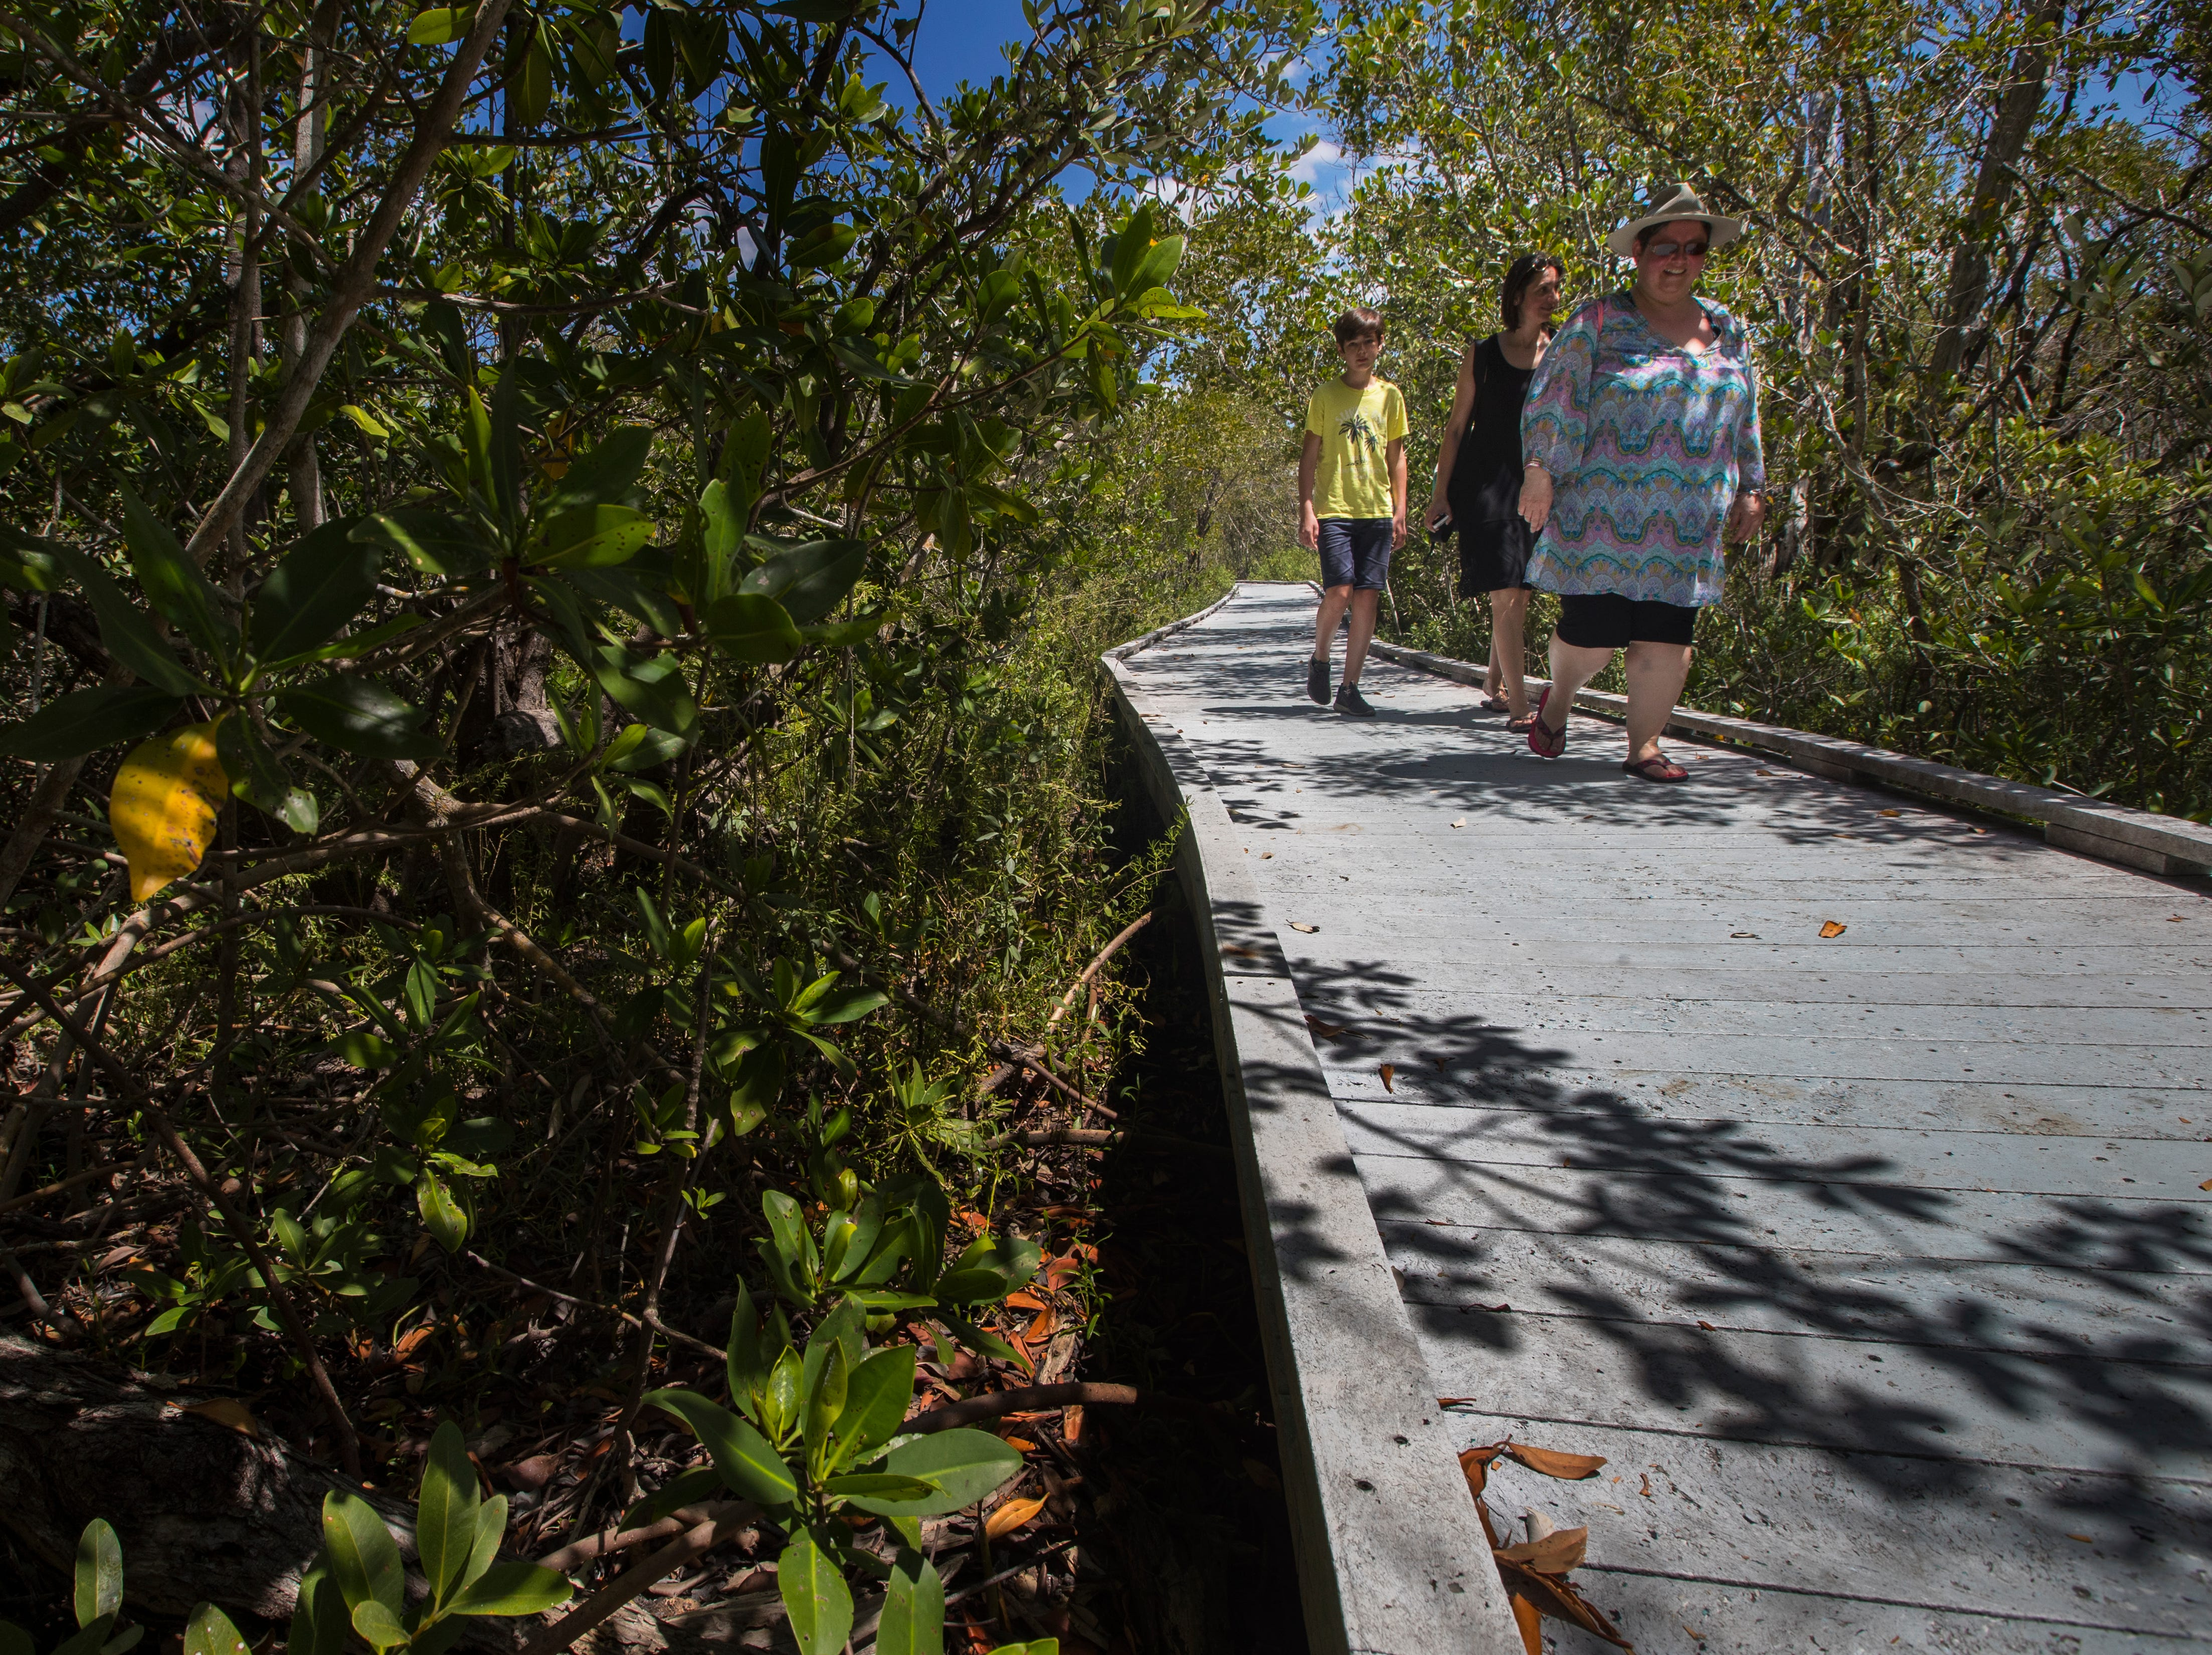 Tourists make their way through the Matanzas Pass Preserve boardwalk trail Tuesday afternoon, April23, 2019. The preserve is scheduled to undergo new upgrades.